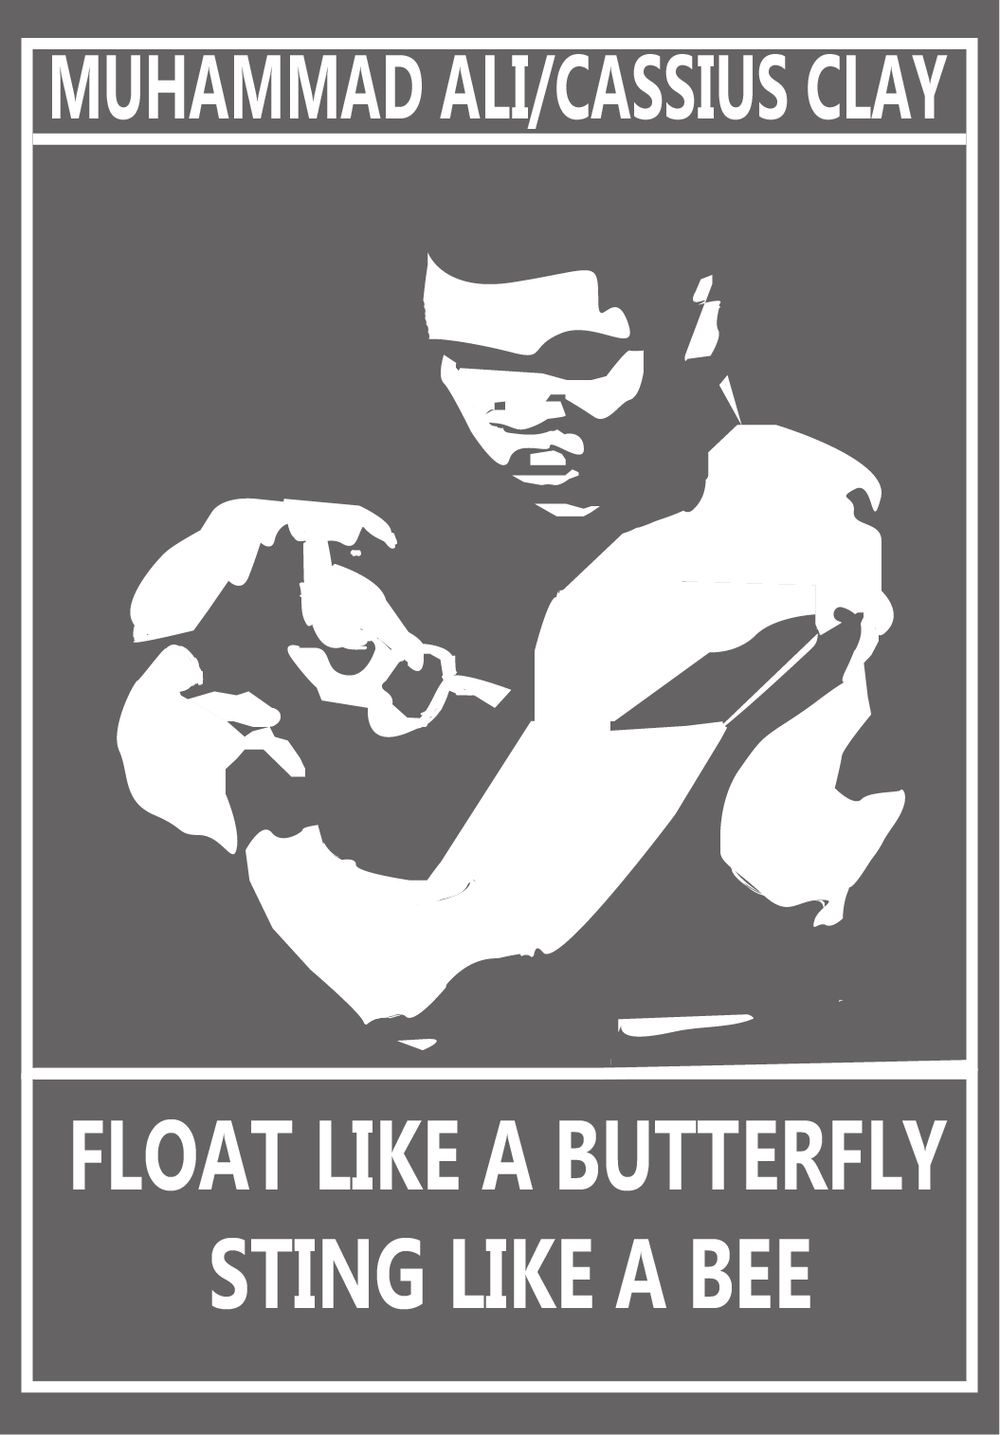 Float Like a Butterfly - image 2 - student project